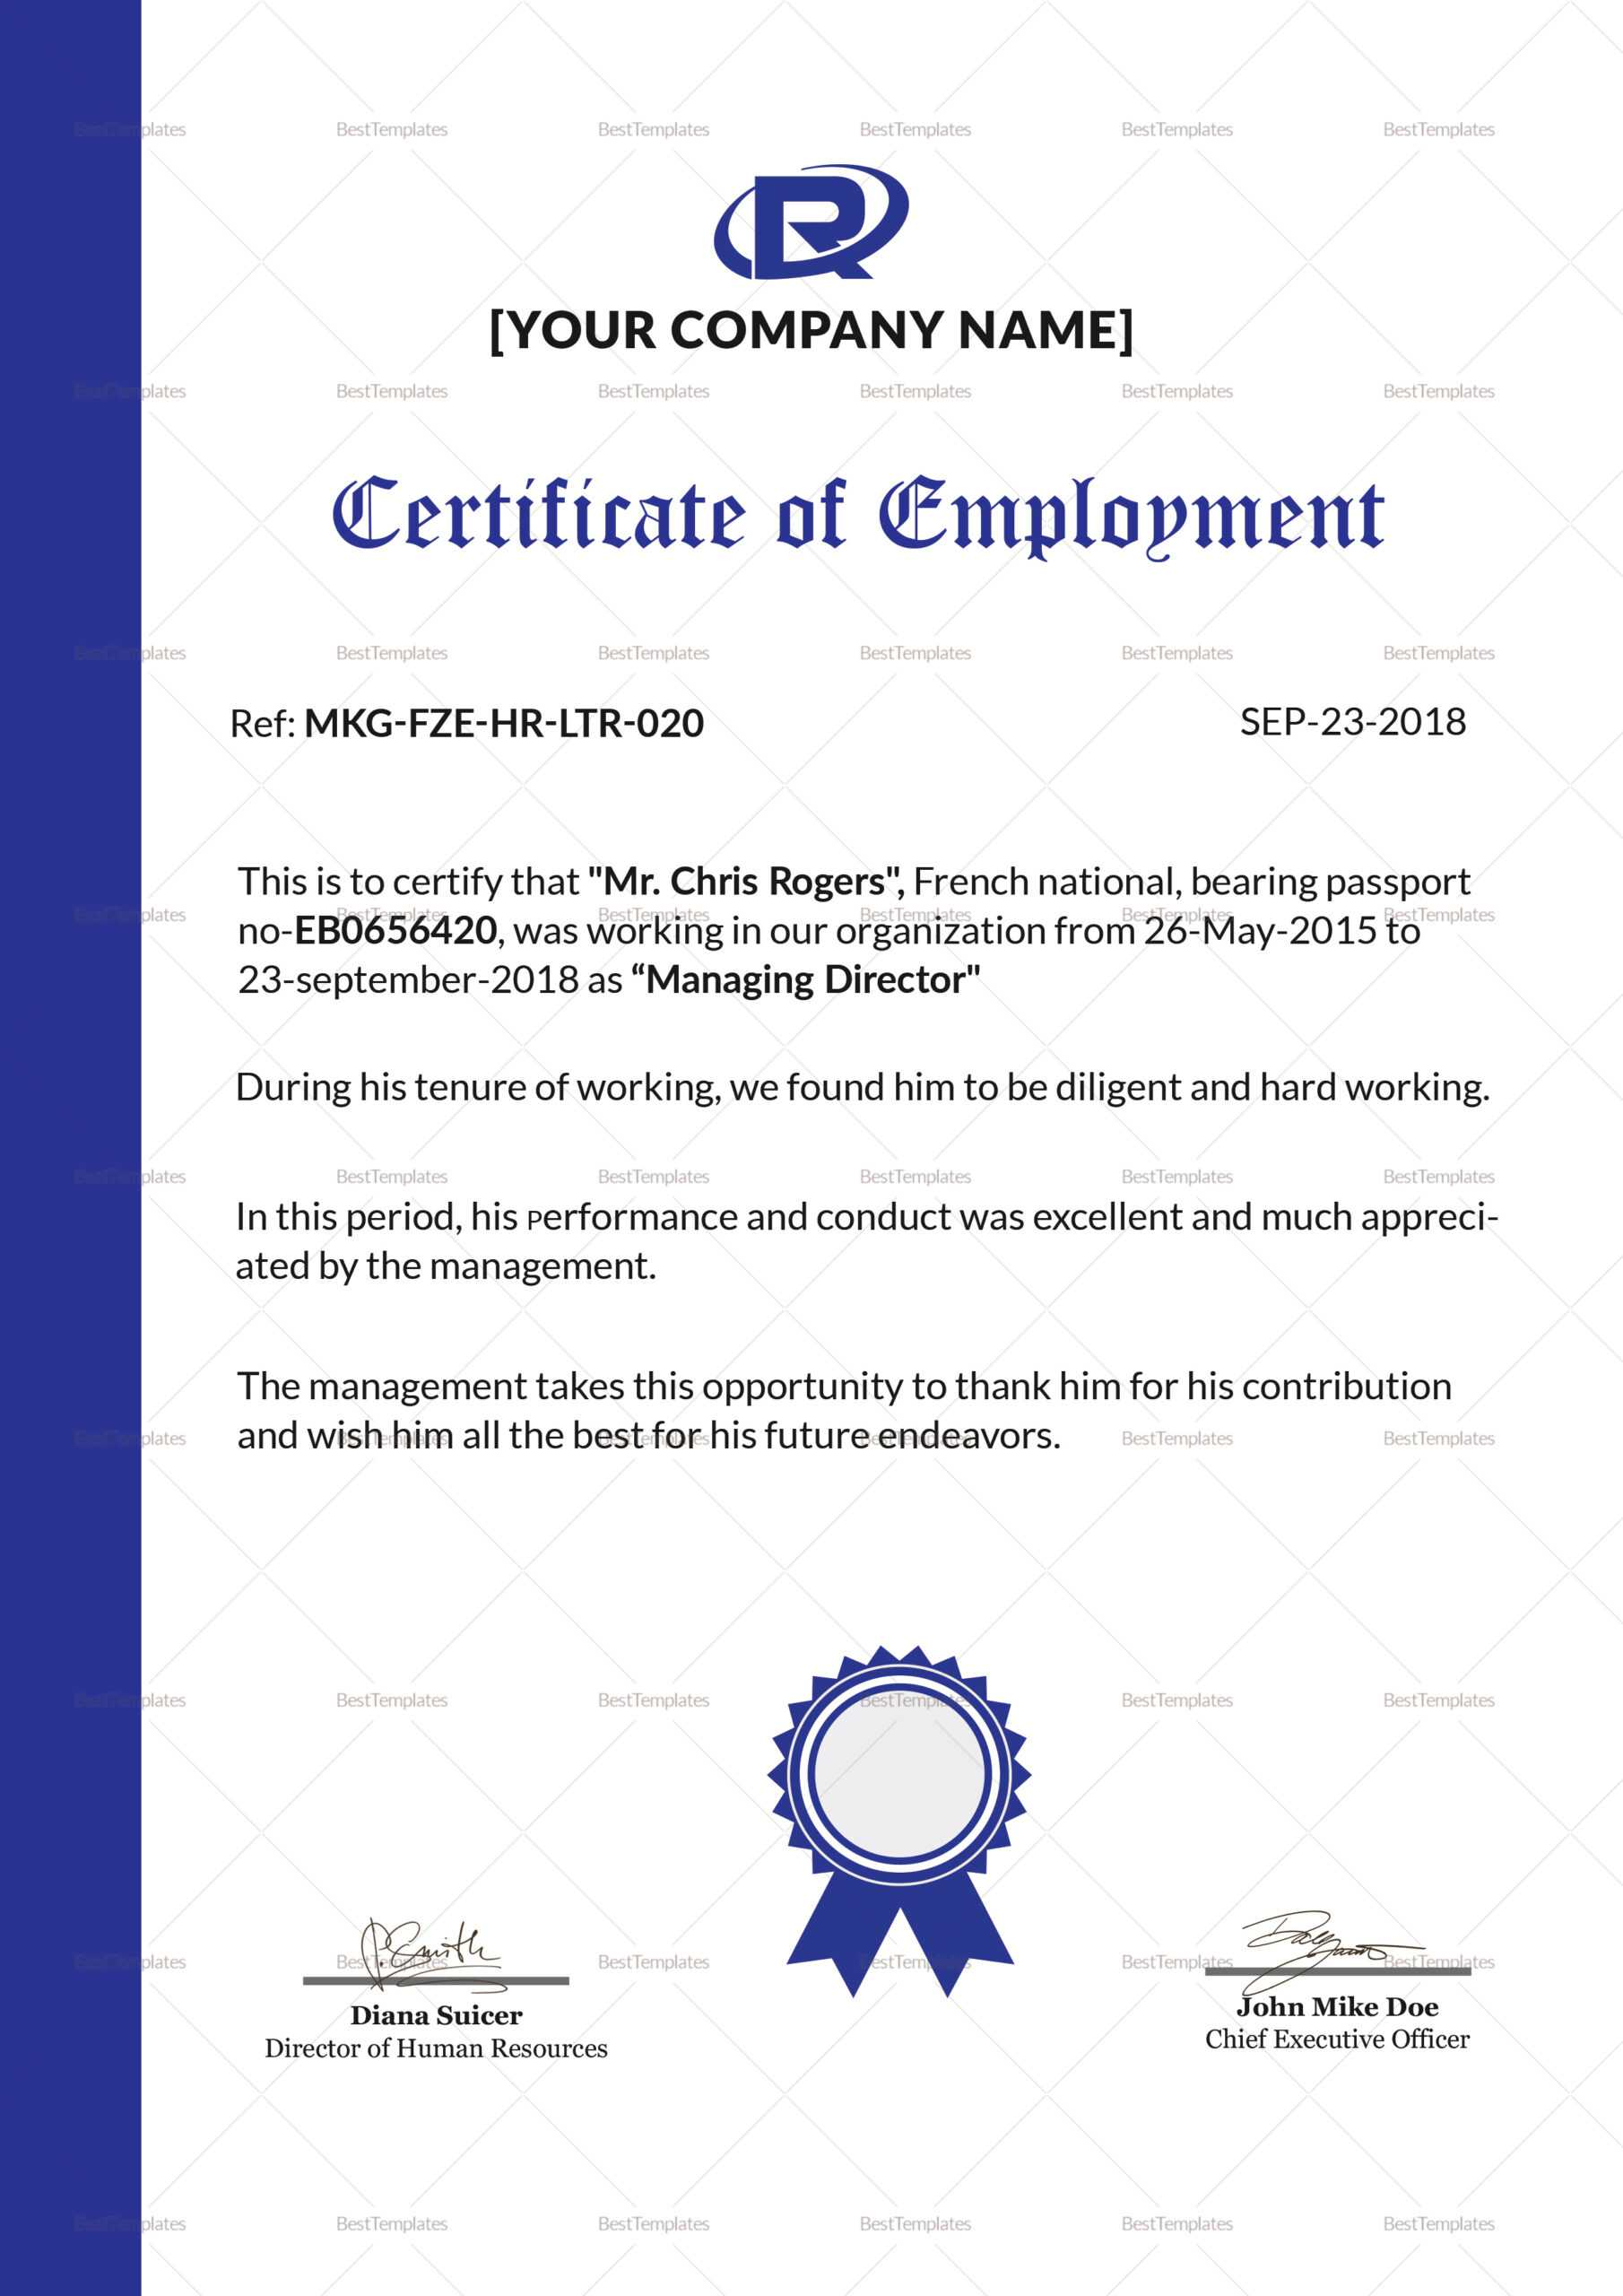 006 Certificate Of Employment Template Sample Impressive Intended For Sample Certificate Employment Template